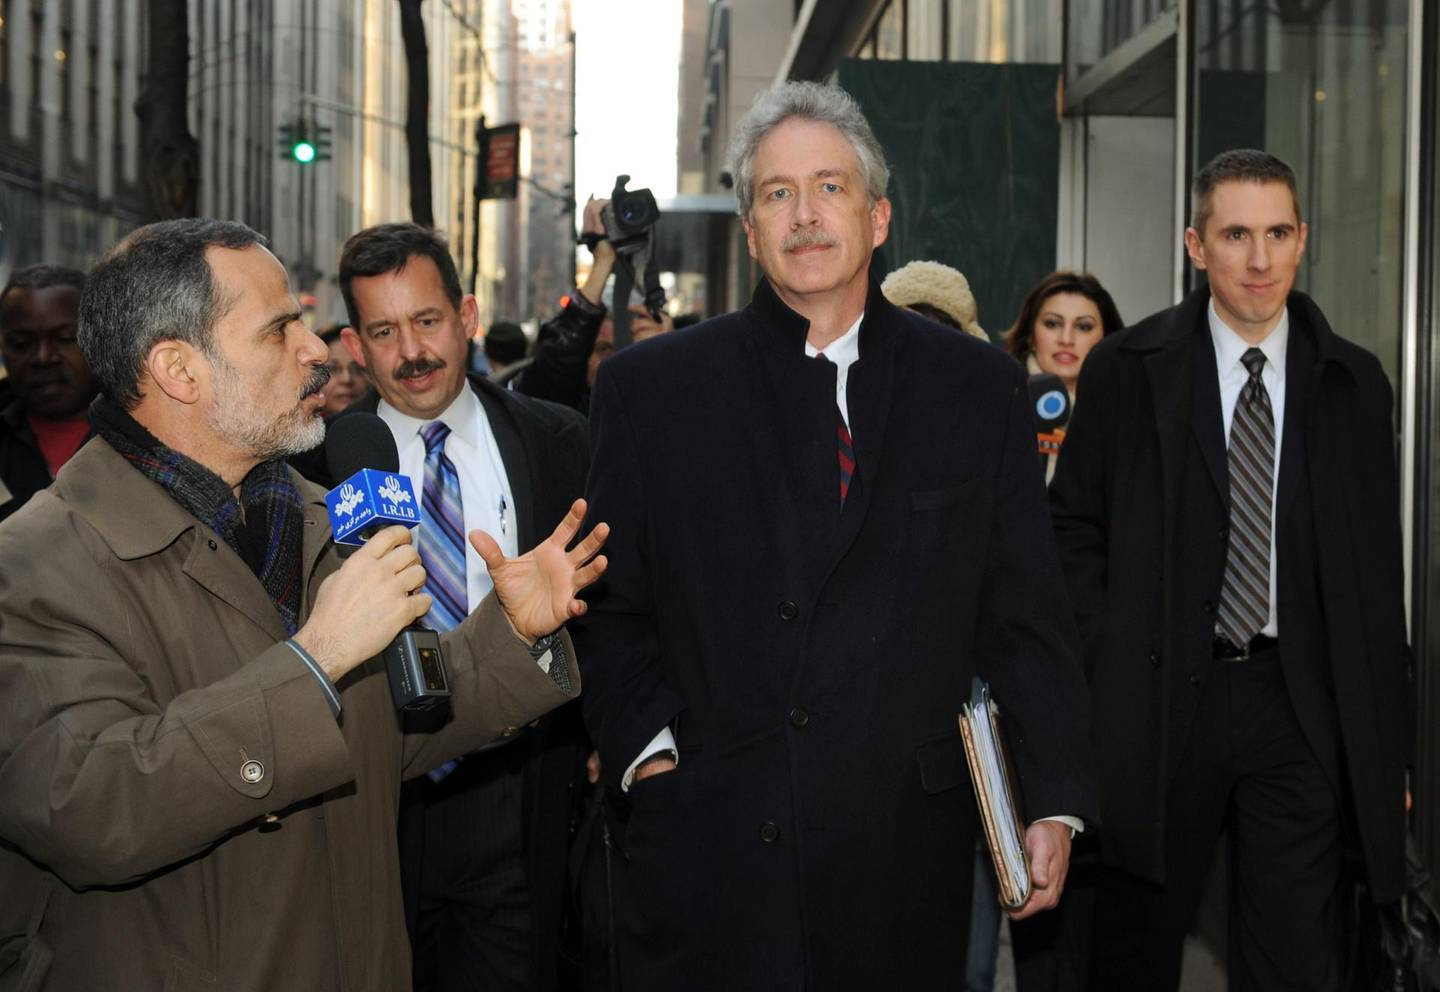 (FILES) In this file photograph taken on January 16, 2010, a reporter from Iranian television (L) asks a question of US diplomat Williams Burns (C) as he leaves a meeting of the 'Iran 6' in New York. As six major powers huddled behind closed doors to mull a response to Iran's nuclear defiance.   US President-elect Joe Biden on January 11, 2021, has announced William Burns as his pick to lead the Central Intelligence Agency, tapping a veteran diplomat who has served in posts around the world. / AFP / Don EMMERT